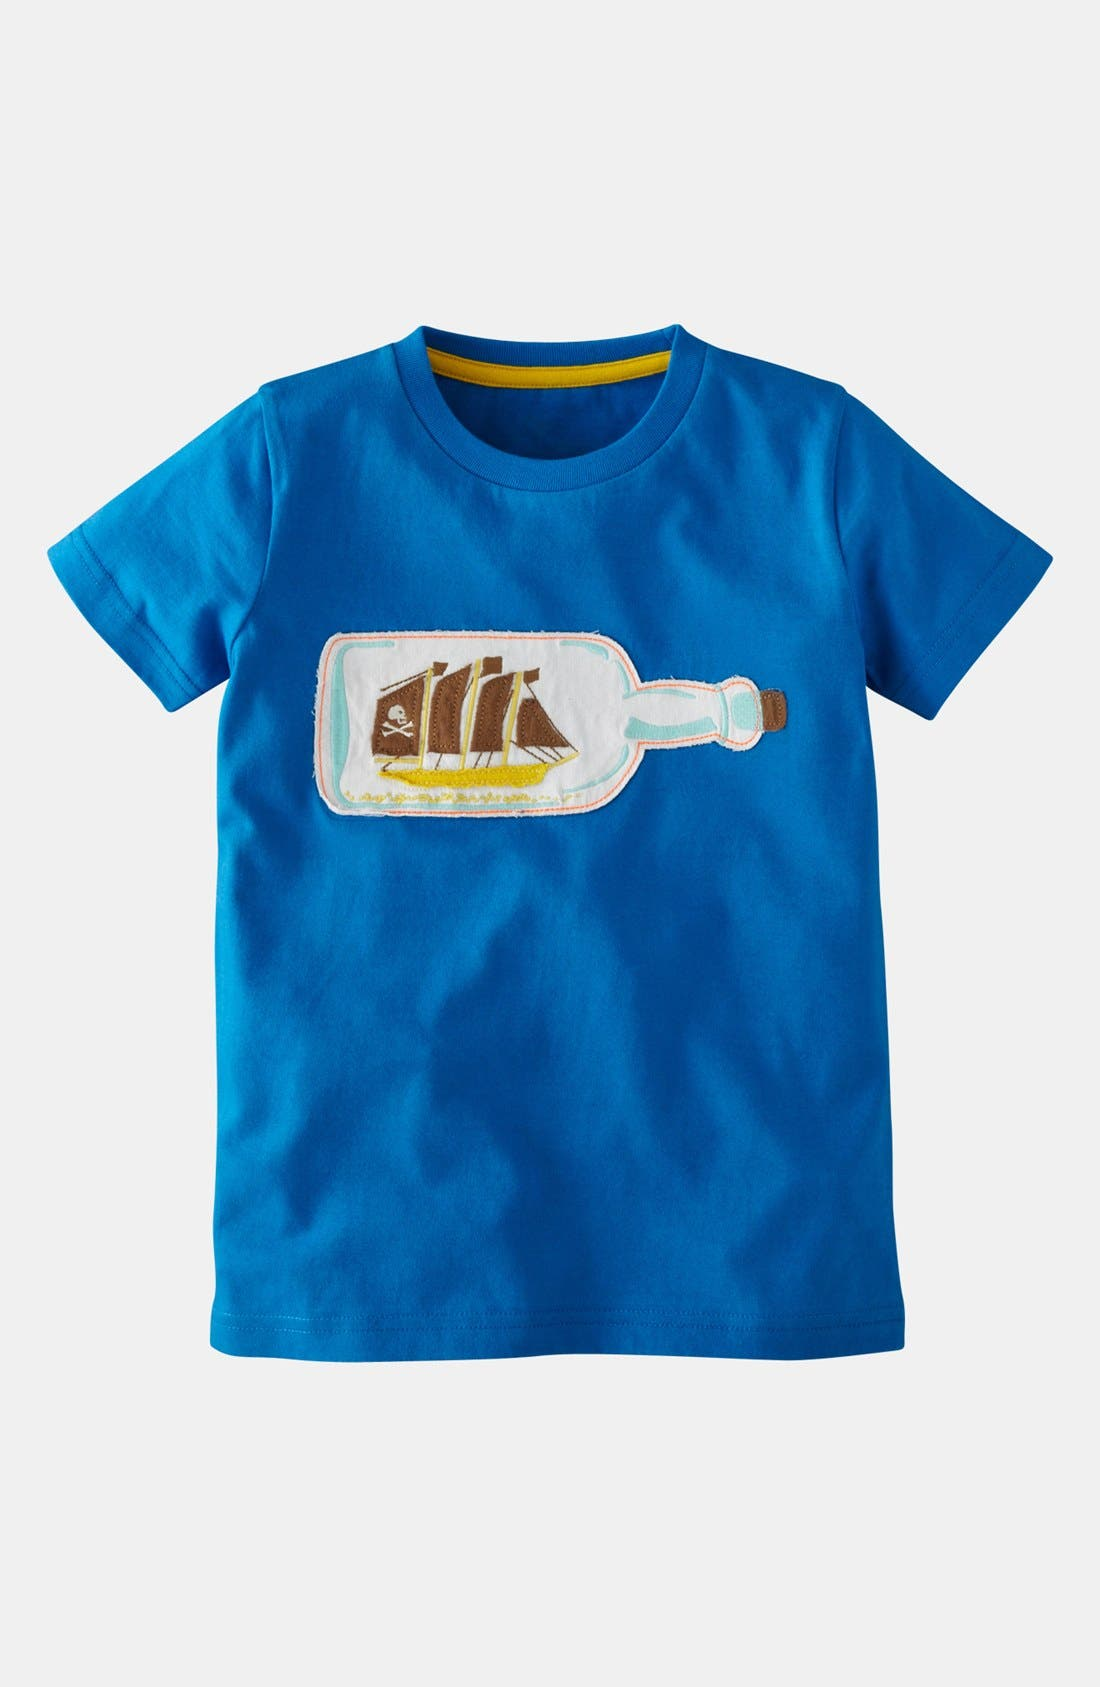 Alternate Image 1 Selected - Mini Boden 'Pirate' T-Shirt (Toddler Boys)